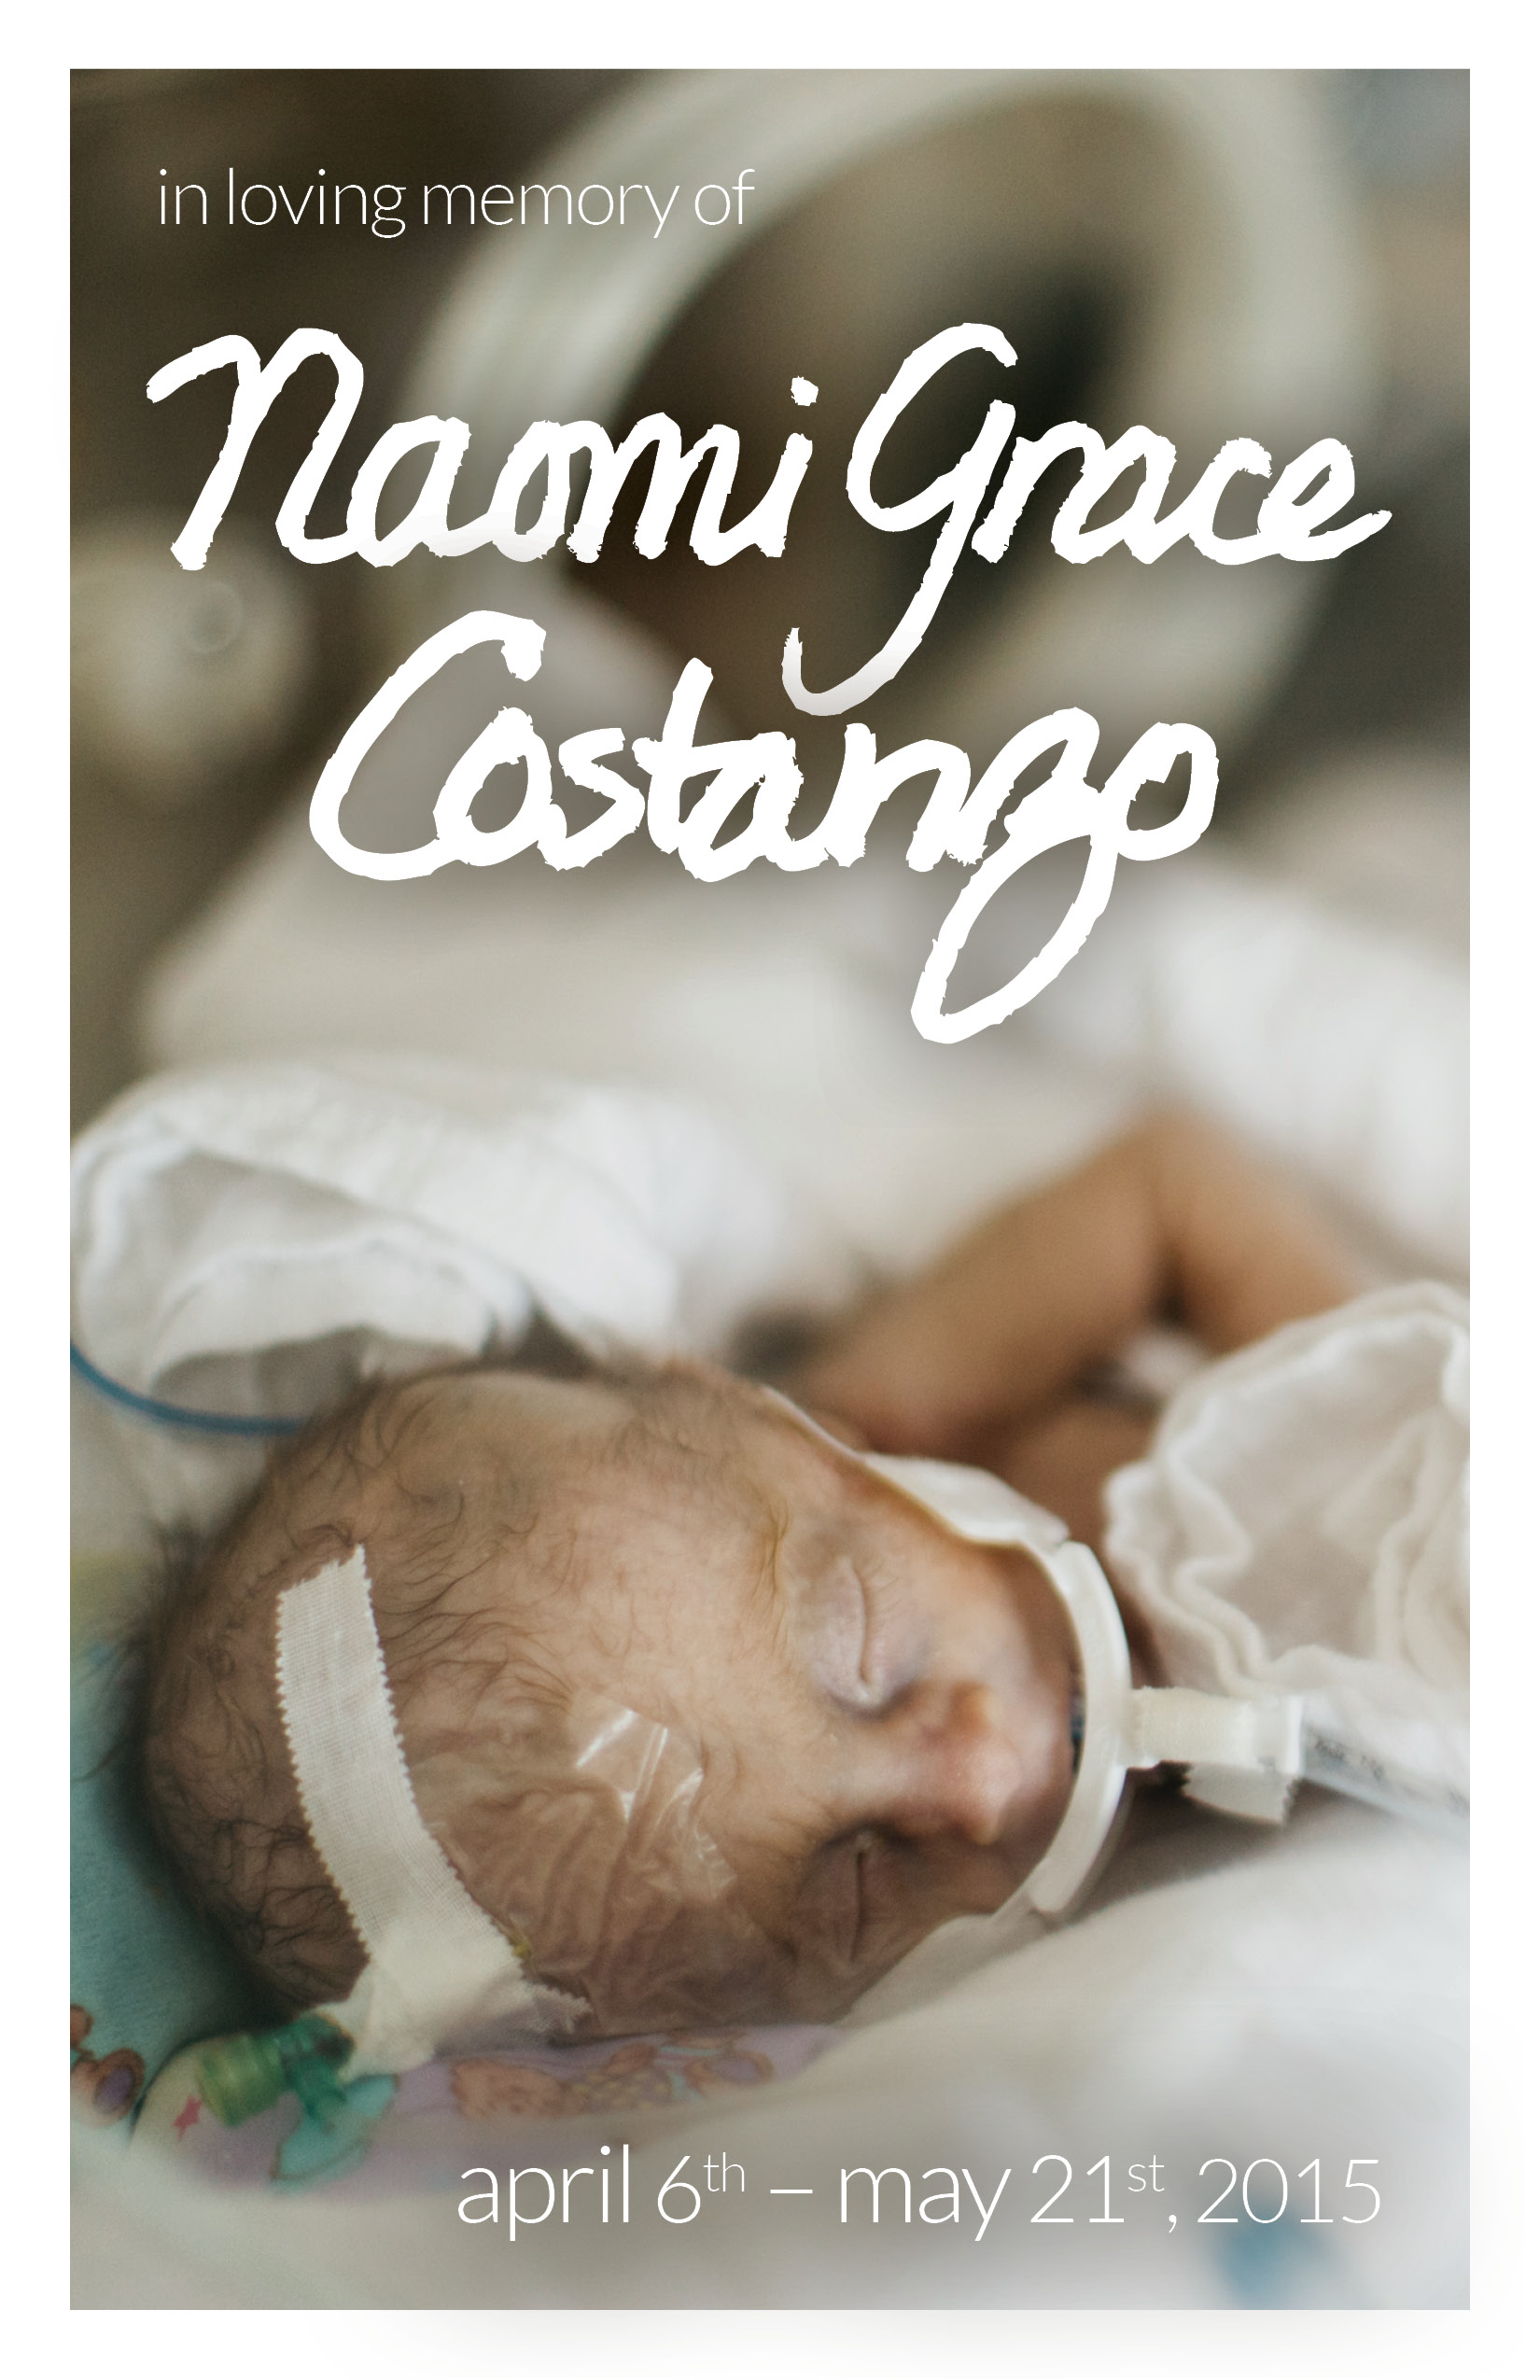 Naomi Grace Costanzo Funeral Service Front Cover